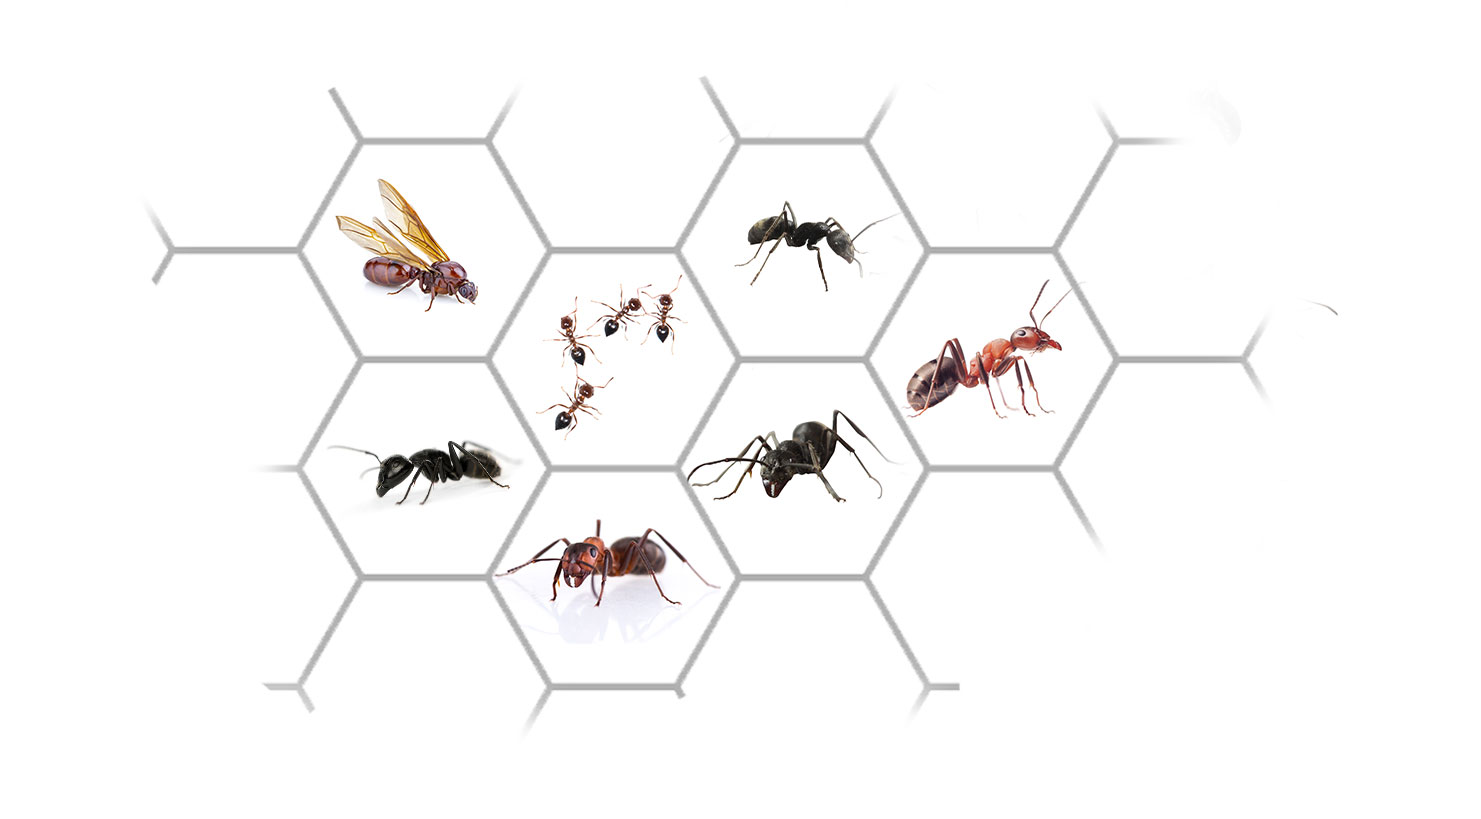 Ant Control Services: Exterminator For Ants In Connecticut